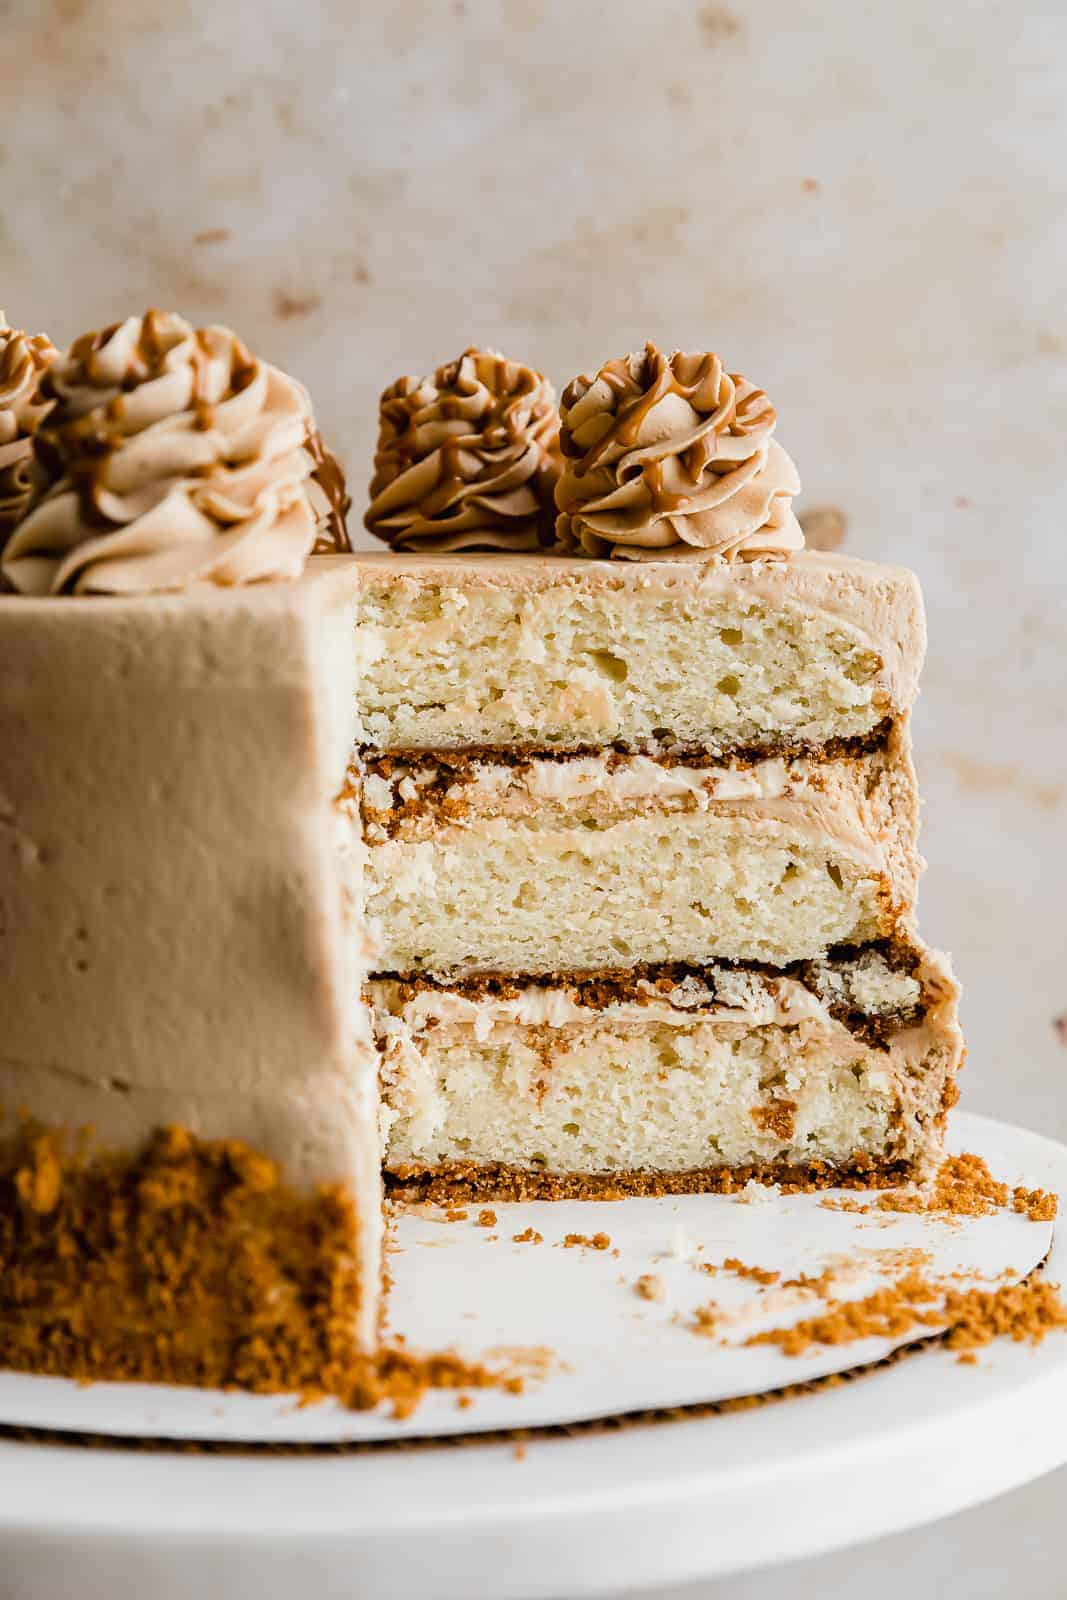 A Biscoff Cake with a slice taken out showcasing the three layers with a cookie butter crust.